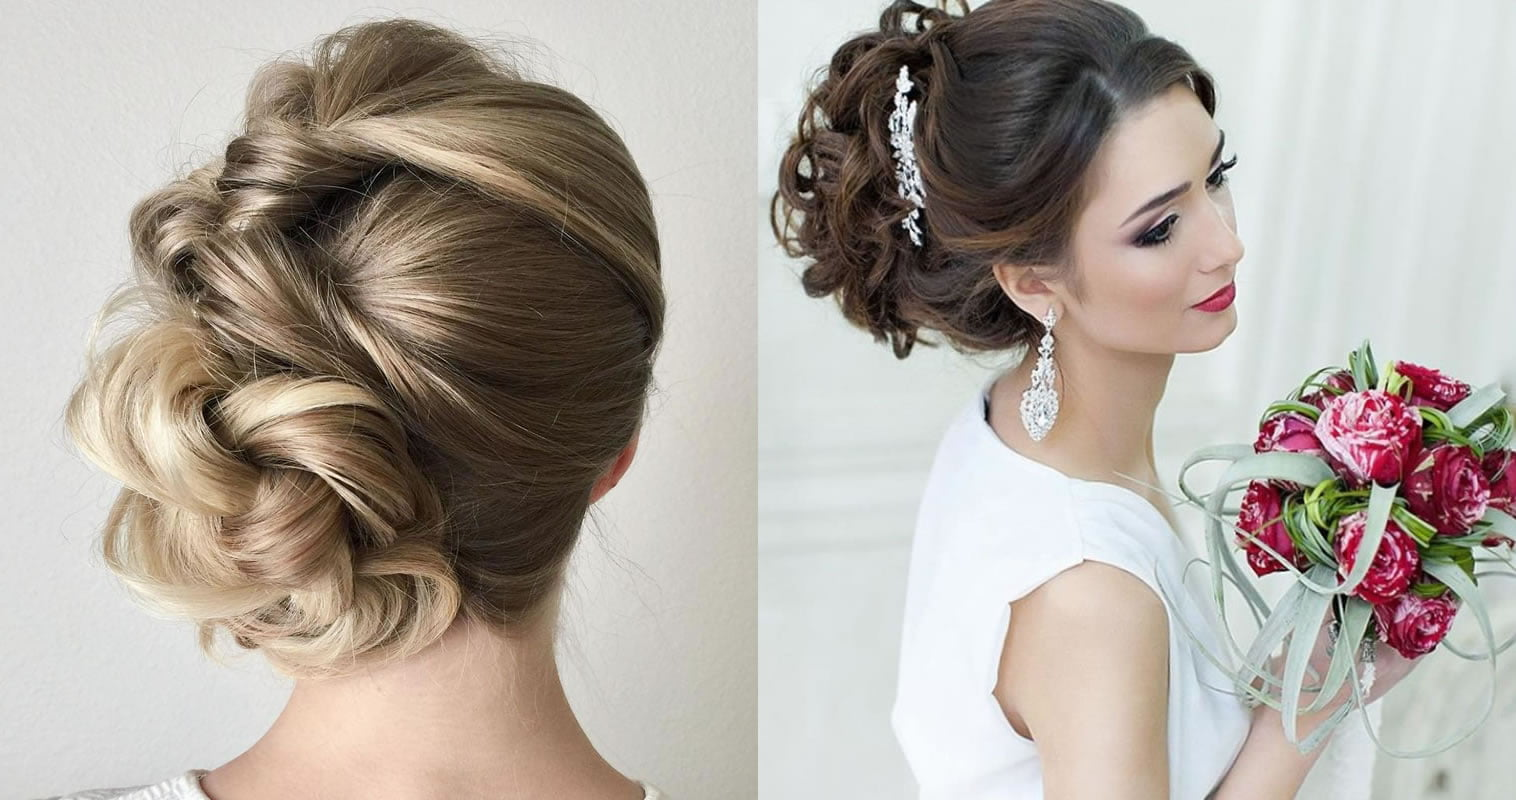 Updo Wedding Hairstyles 2019 Hair Color Ideas For Bride Page 7 Of 9